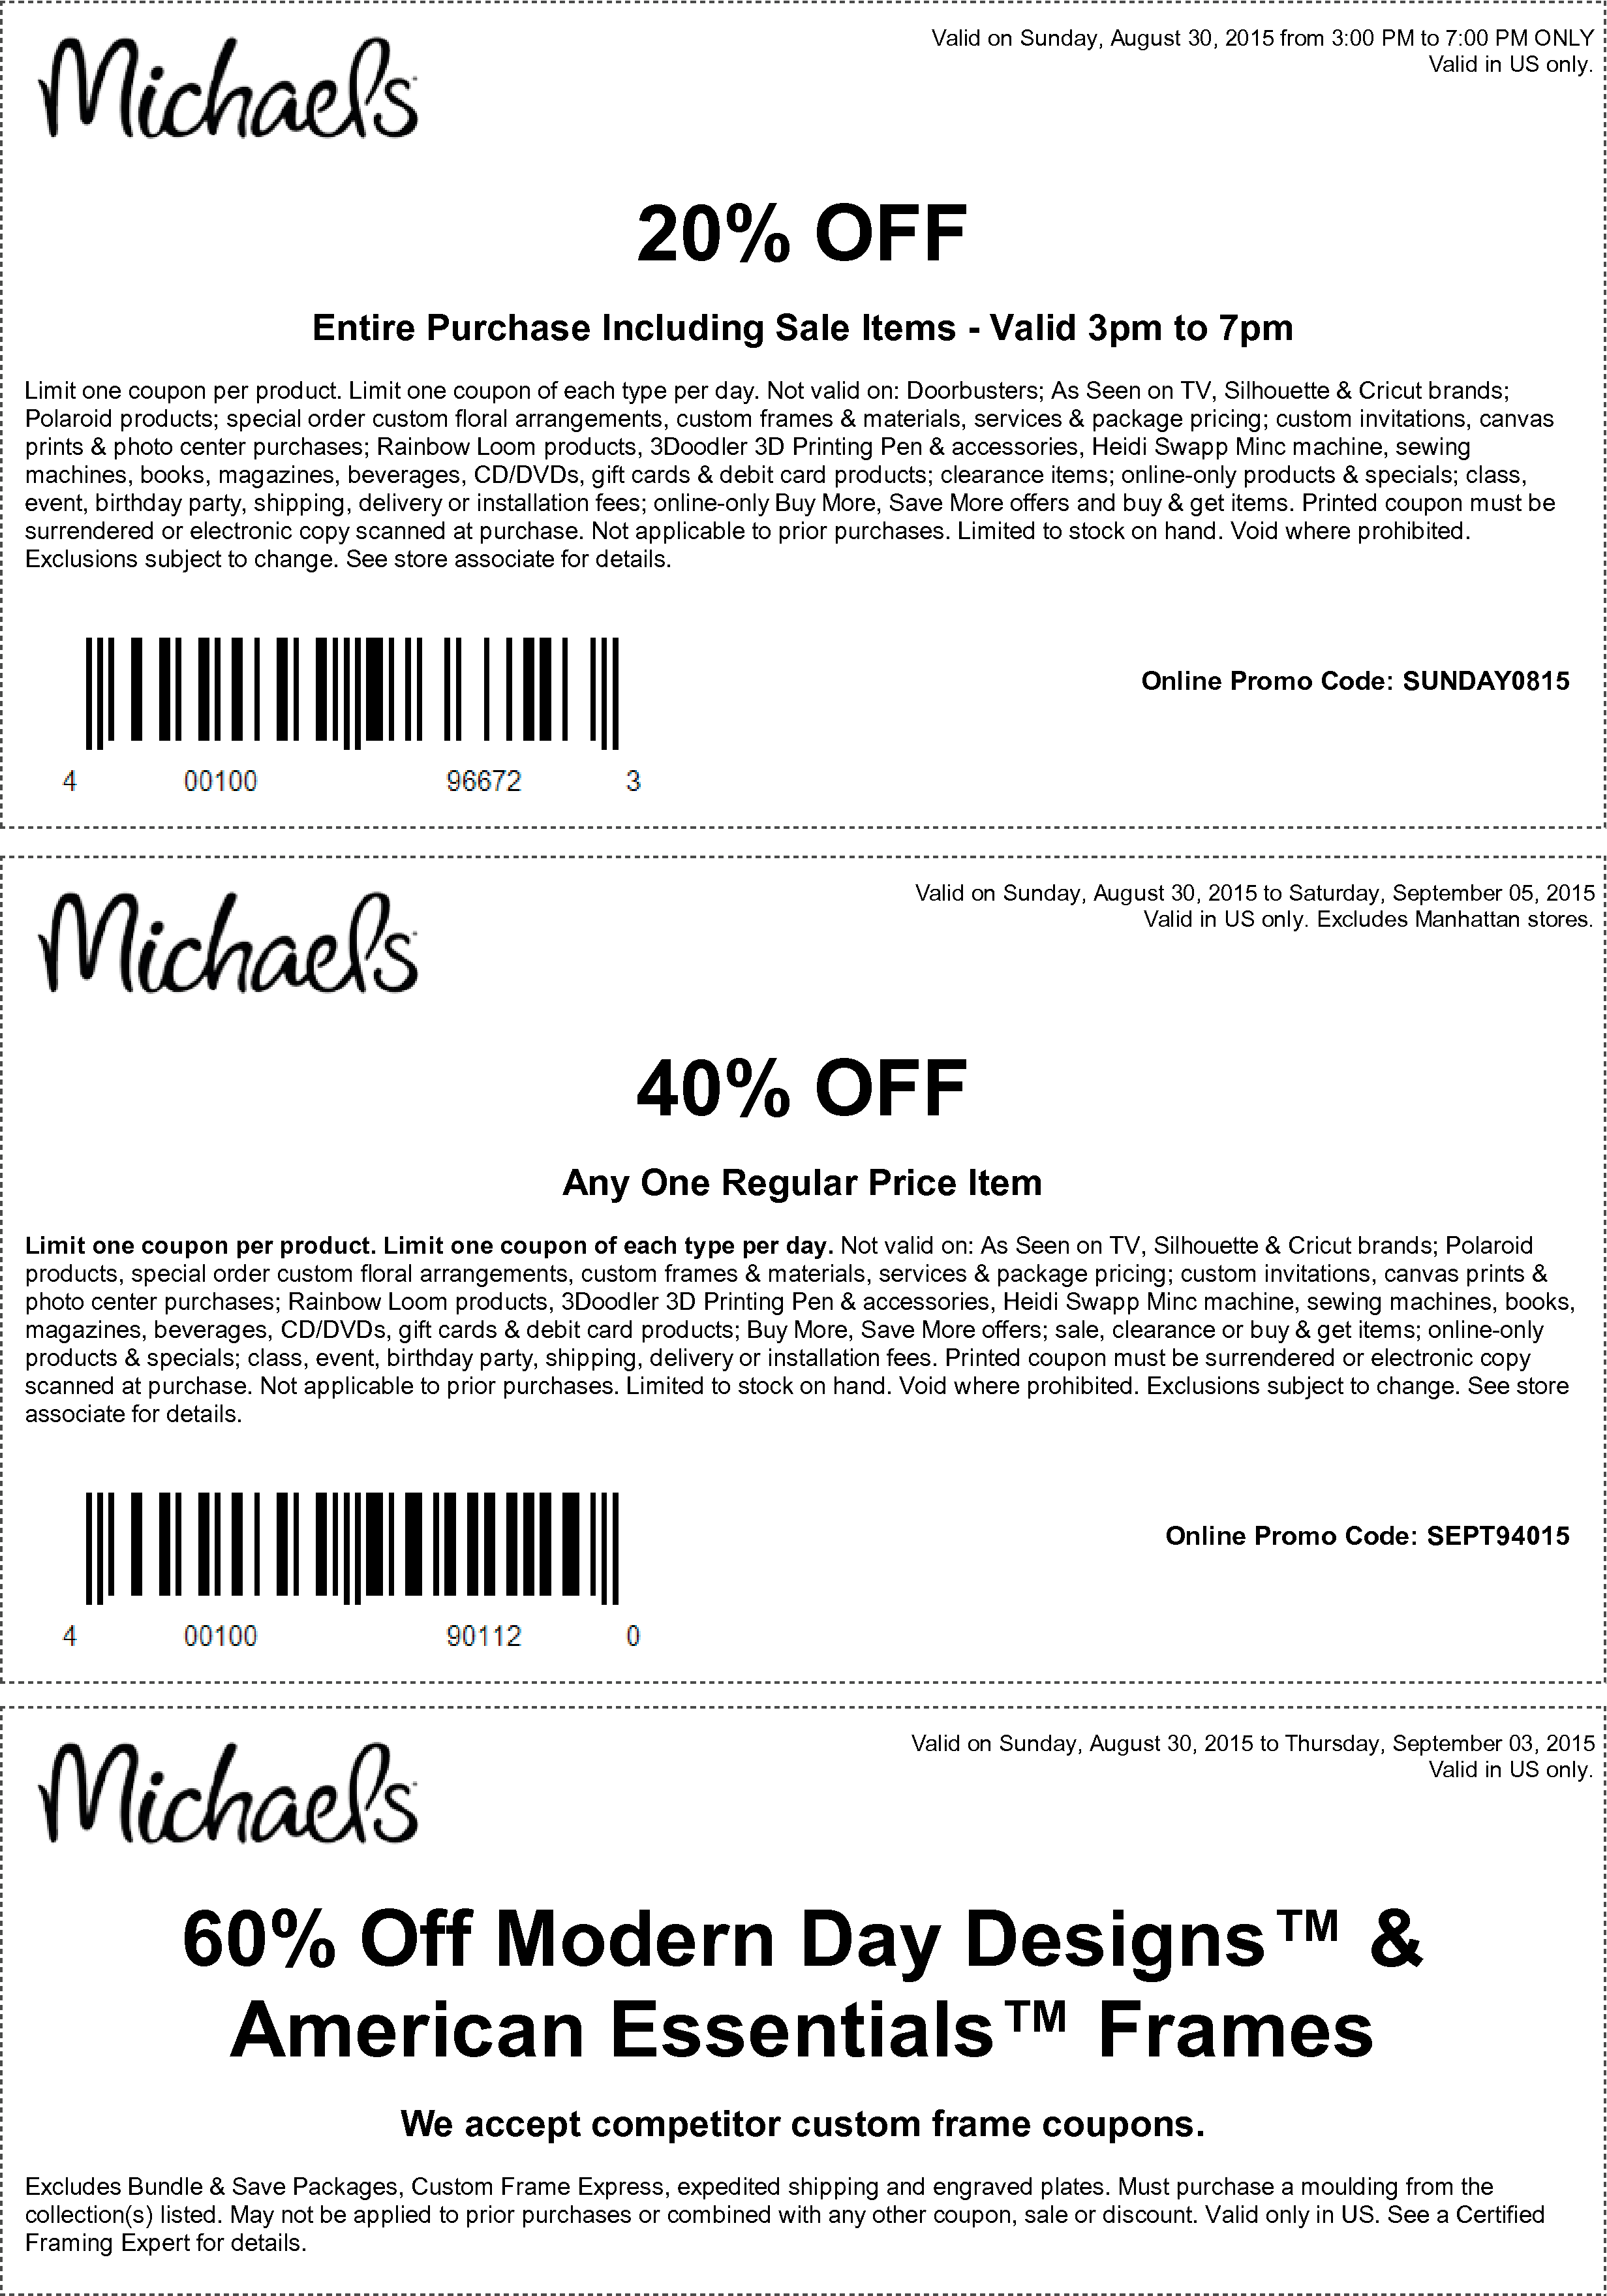 Michaels Coupon March 2018 20% off everything Sunday, or 40% off a single item at Michaels, or online via promo code SEPT94015